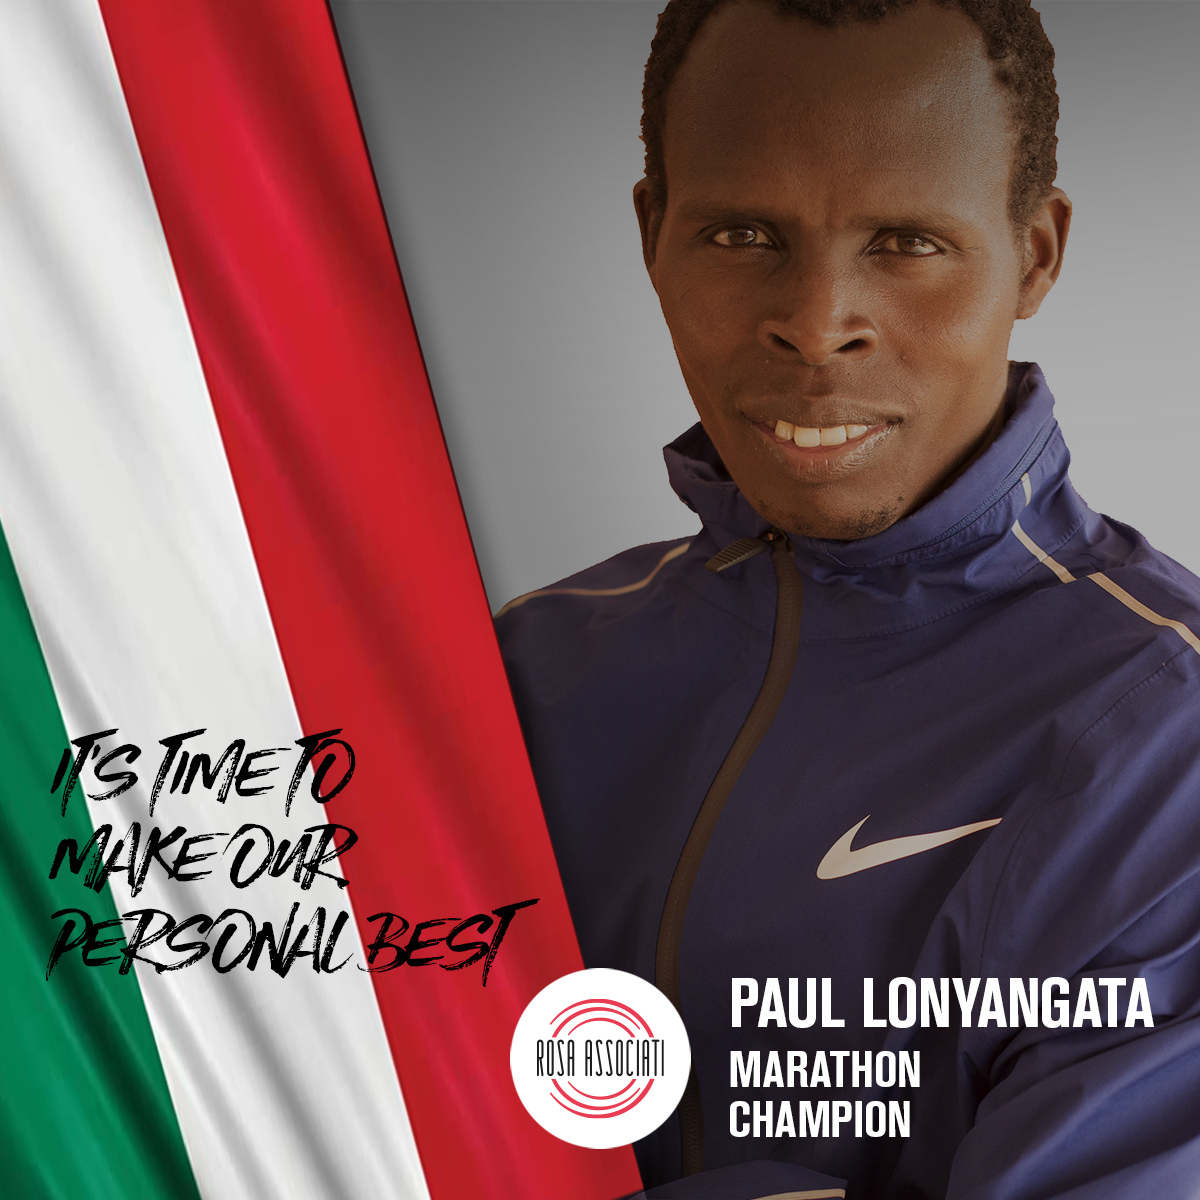 21 2020 - Campagna social We can win this race together-Paul Lonyangata